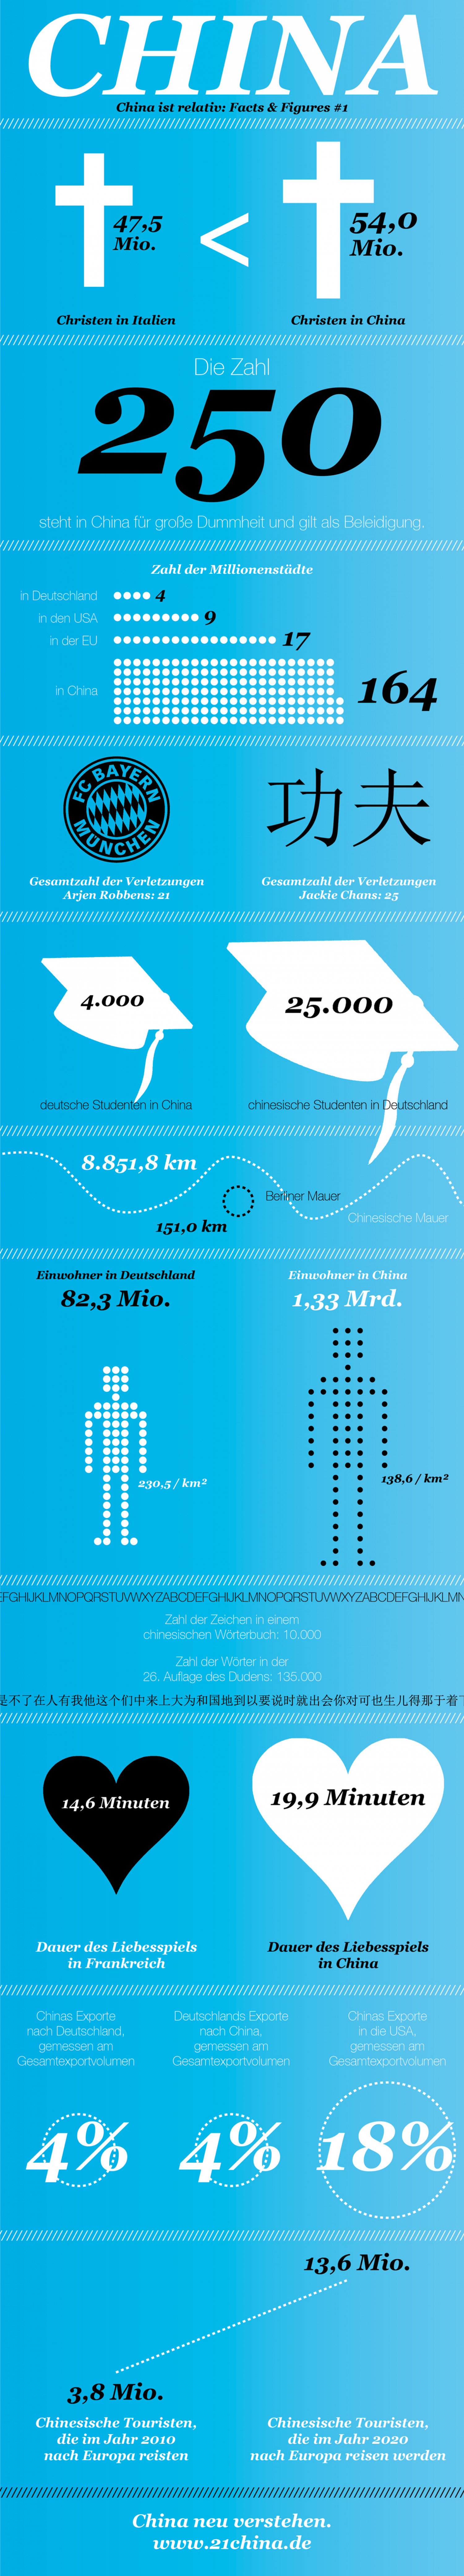 China Facts & Figures Infographic